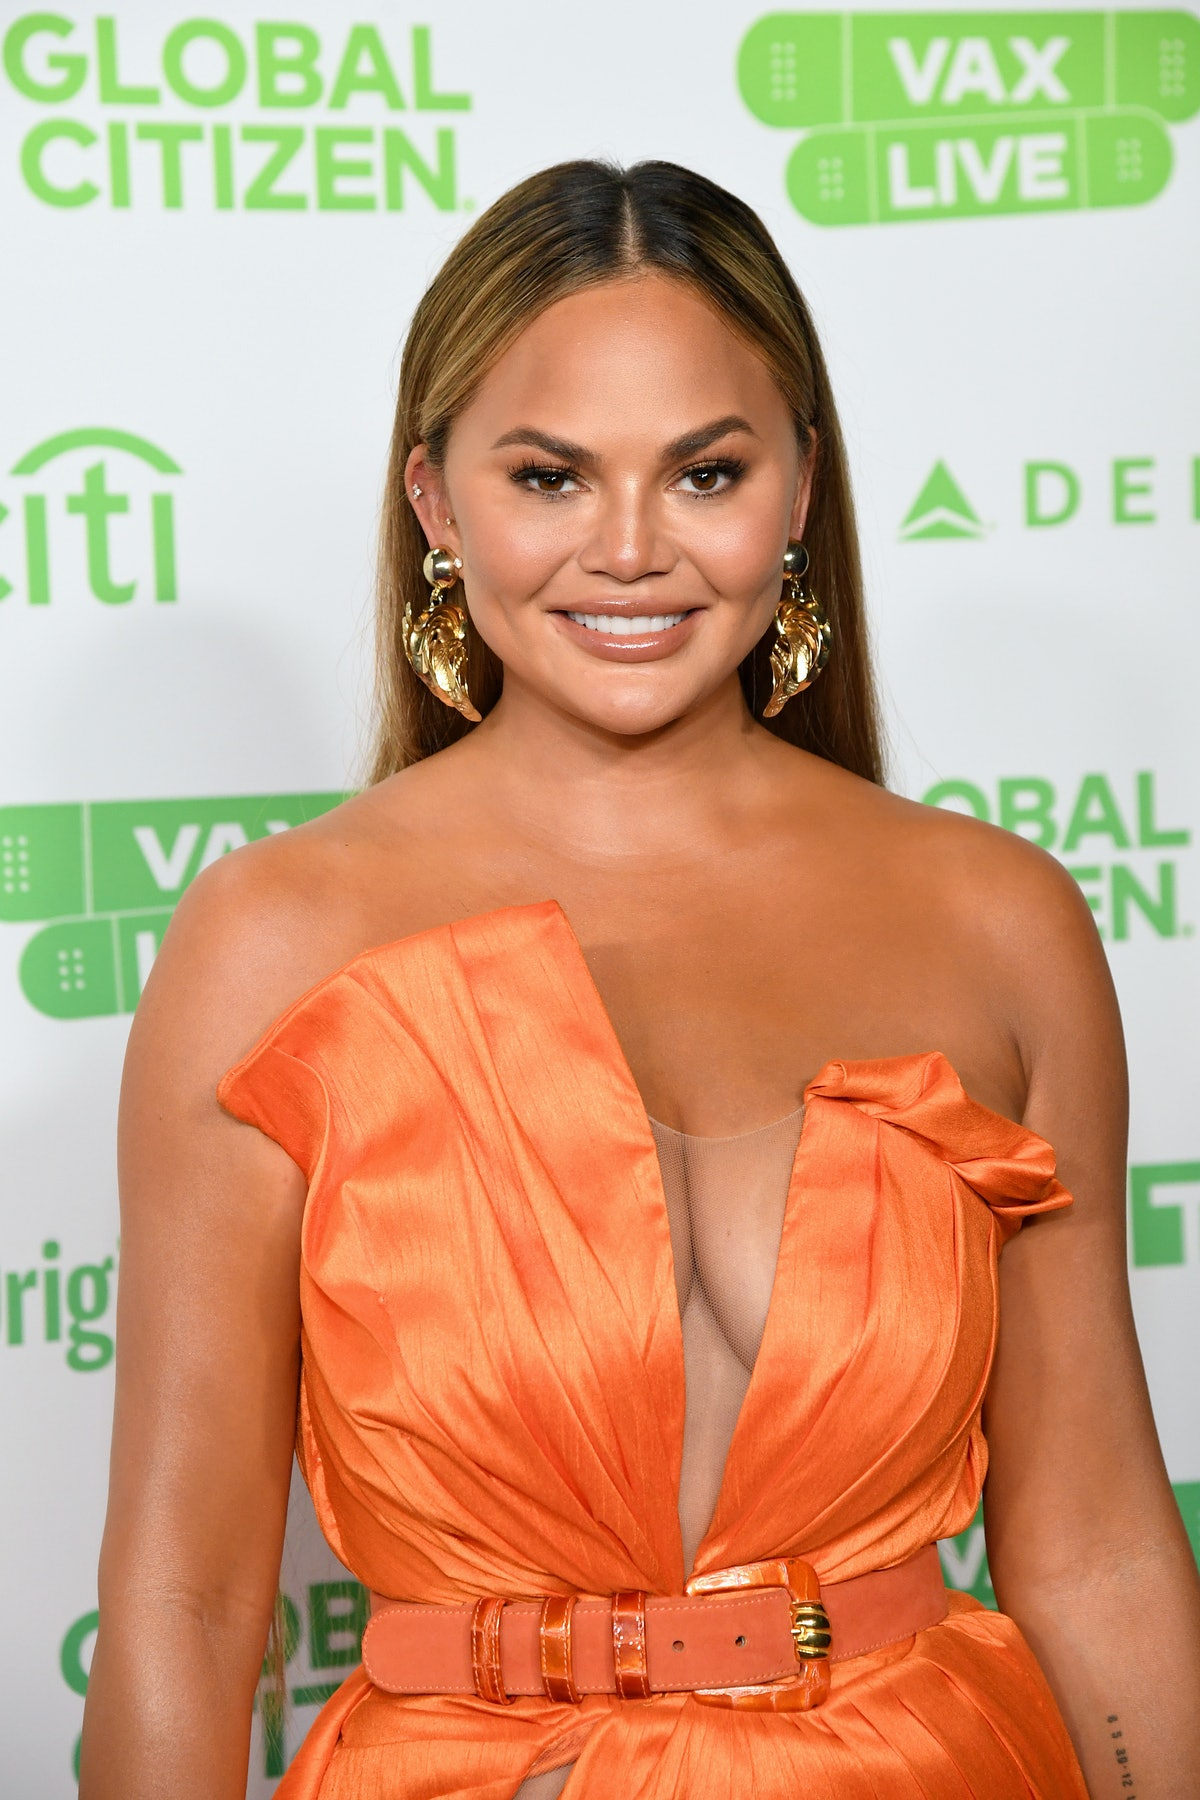 INGLEWOOD, CALIFORNIA: In this image released on May 2, Chrissy Teigen attends Global Citizen VAX LIVE: The Concert To Reunite The World at SoFi Stadium in Inglewood, California. Global Citizen VAX LIVE: The Concert To Reunite The World will be broadcast on May 8, 2021. (Photo by Kevin Mazur/Getty Images for Global Citizen VAX LIVE)